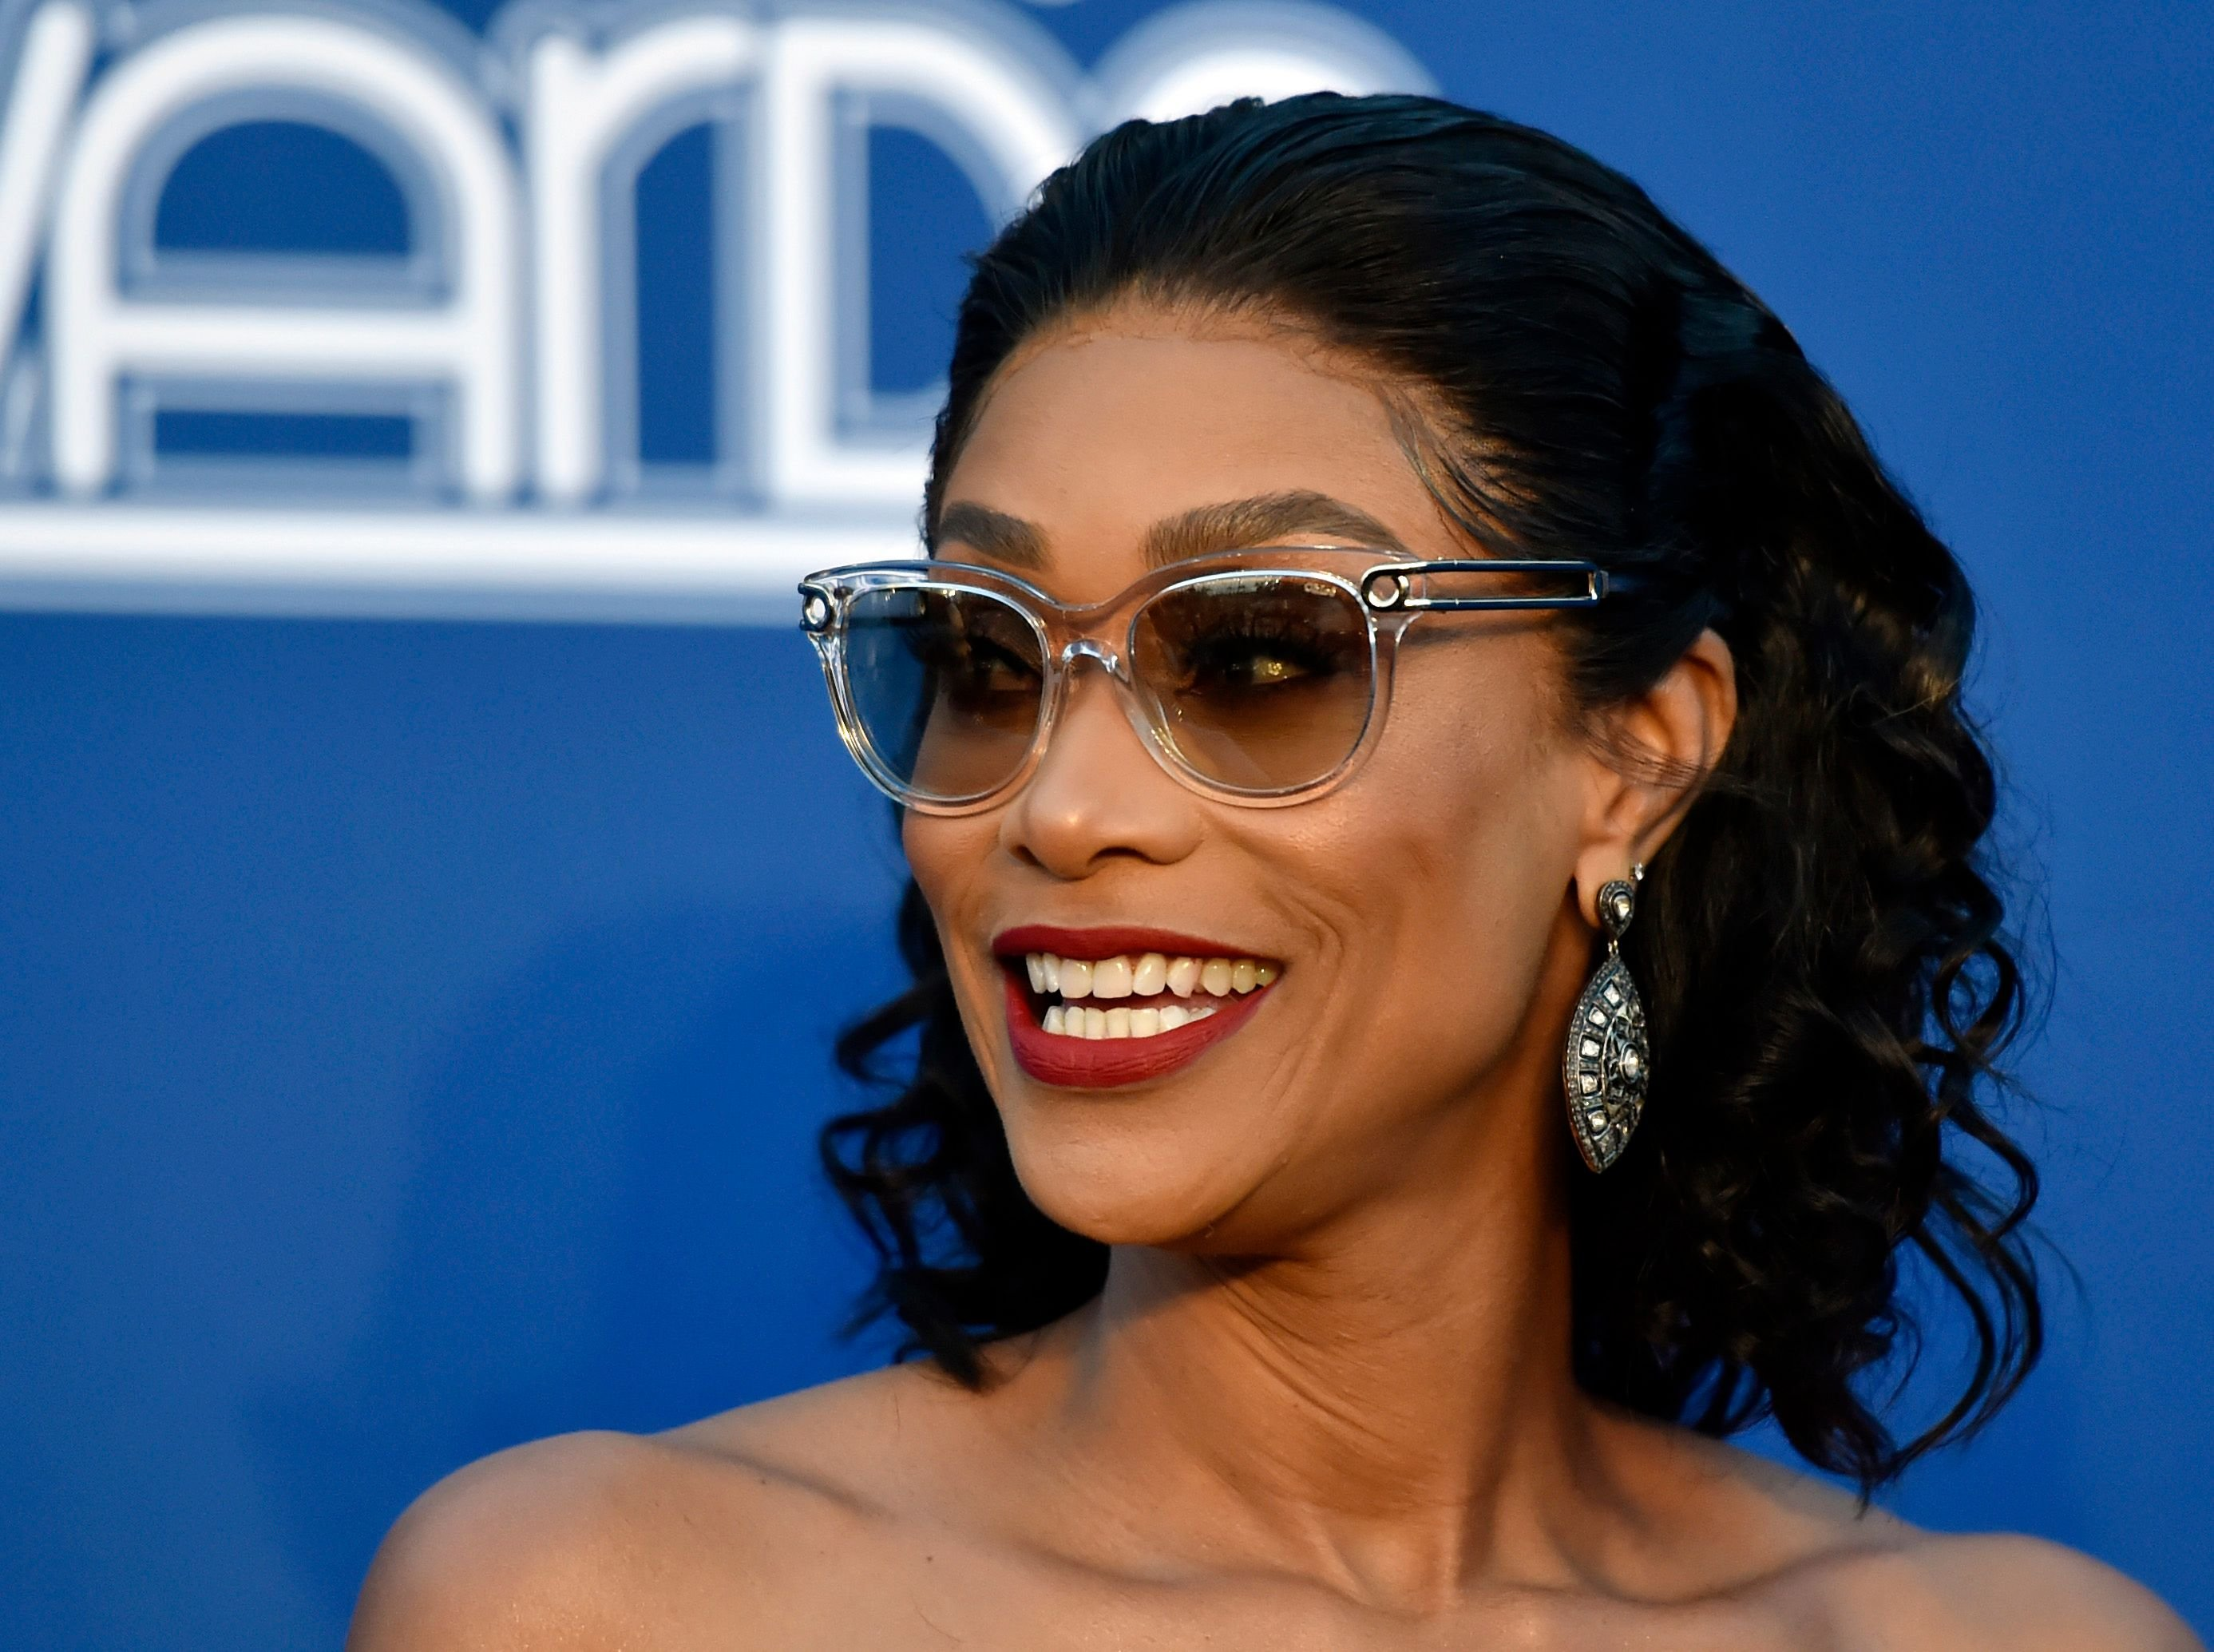 Tami Roman attends the 2018 Soul Train Awards at the Orleans Arena on November 17, 2018 in Las Vegas, Nevada.   Source: Getty Images